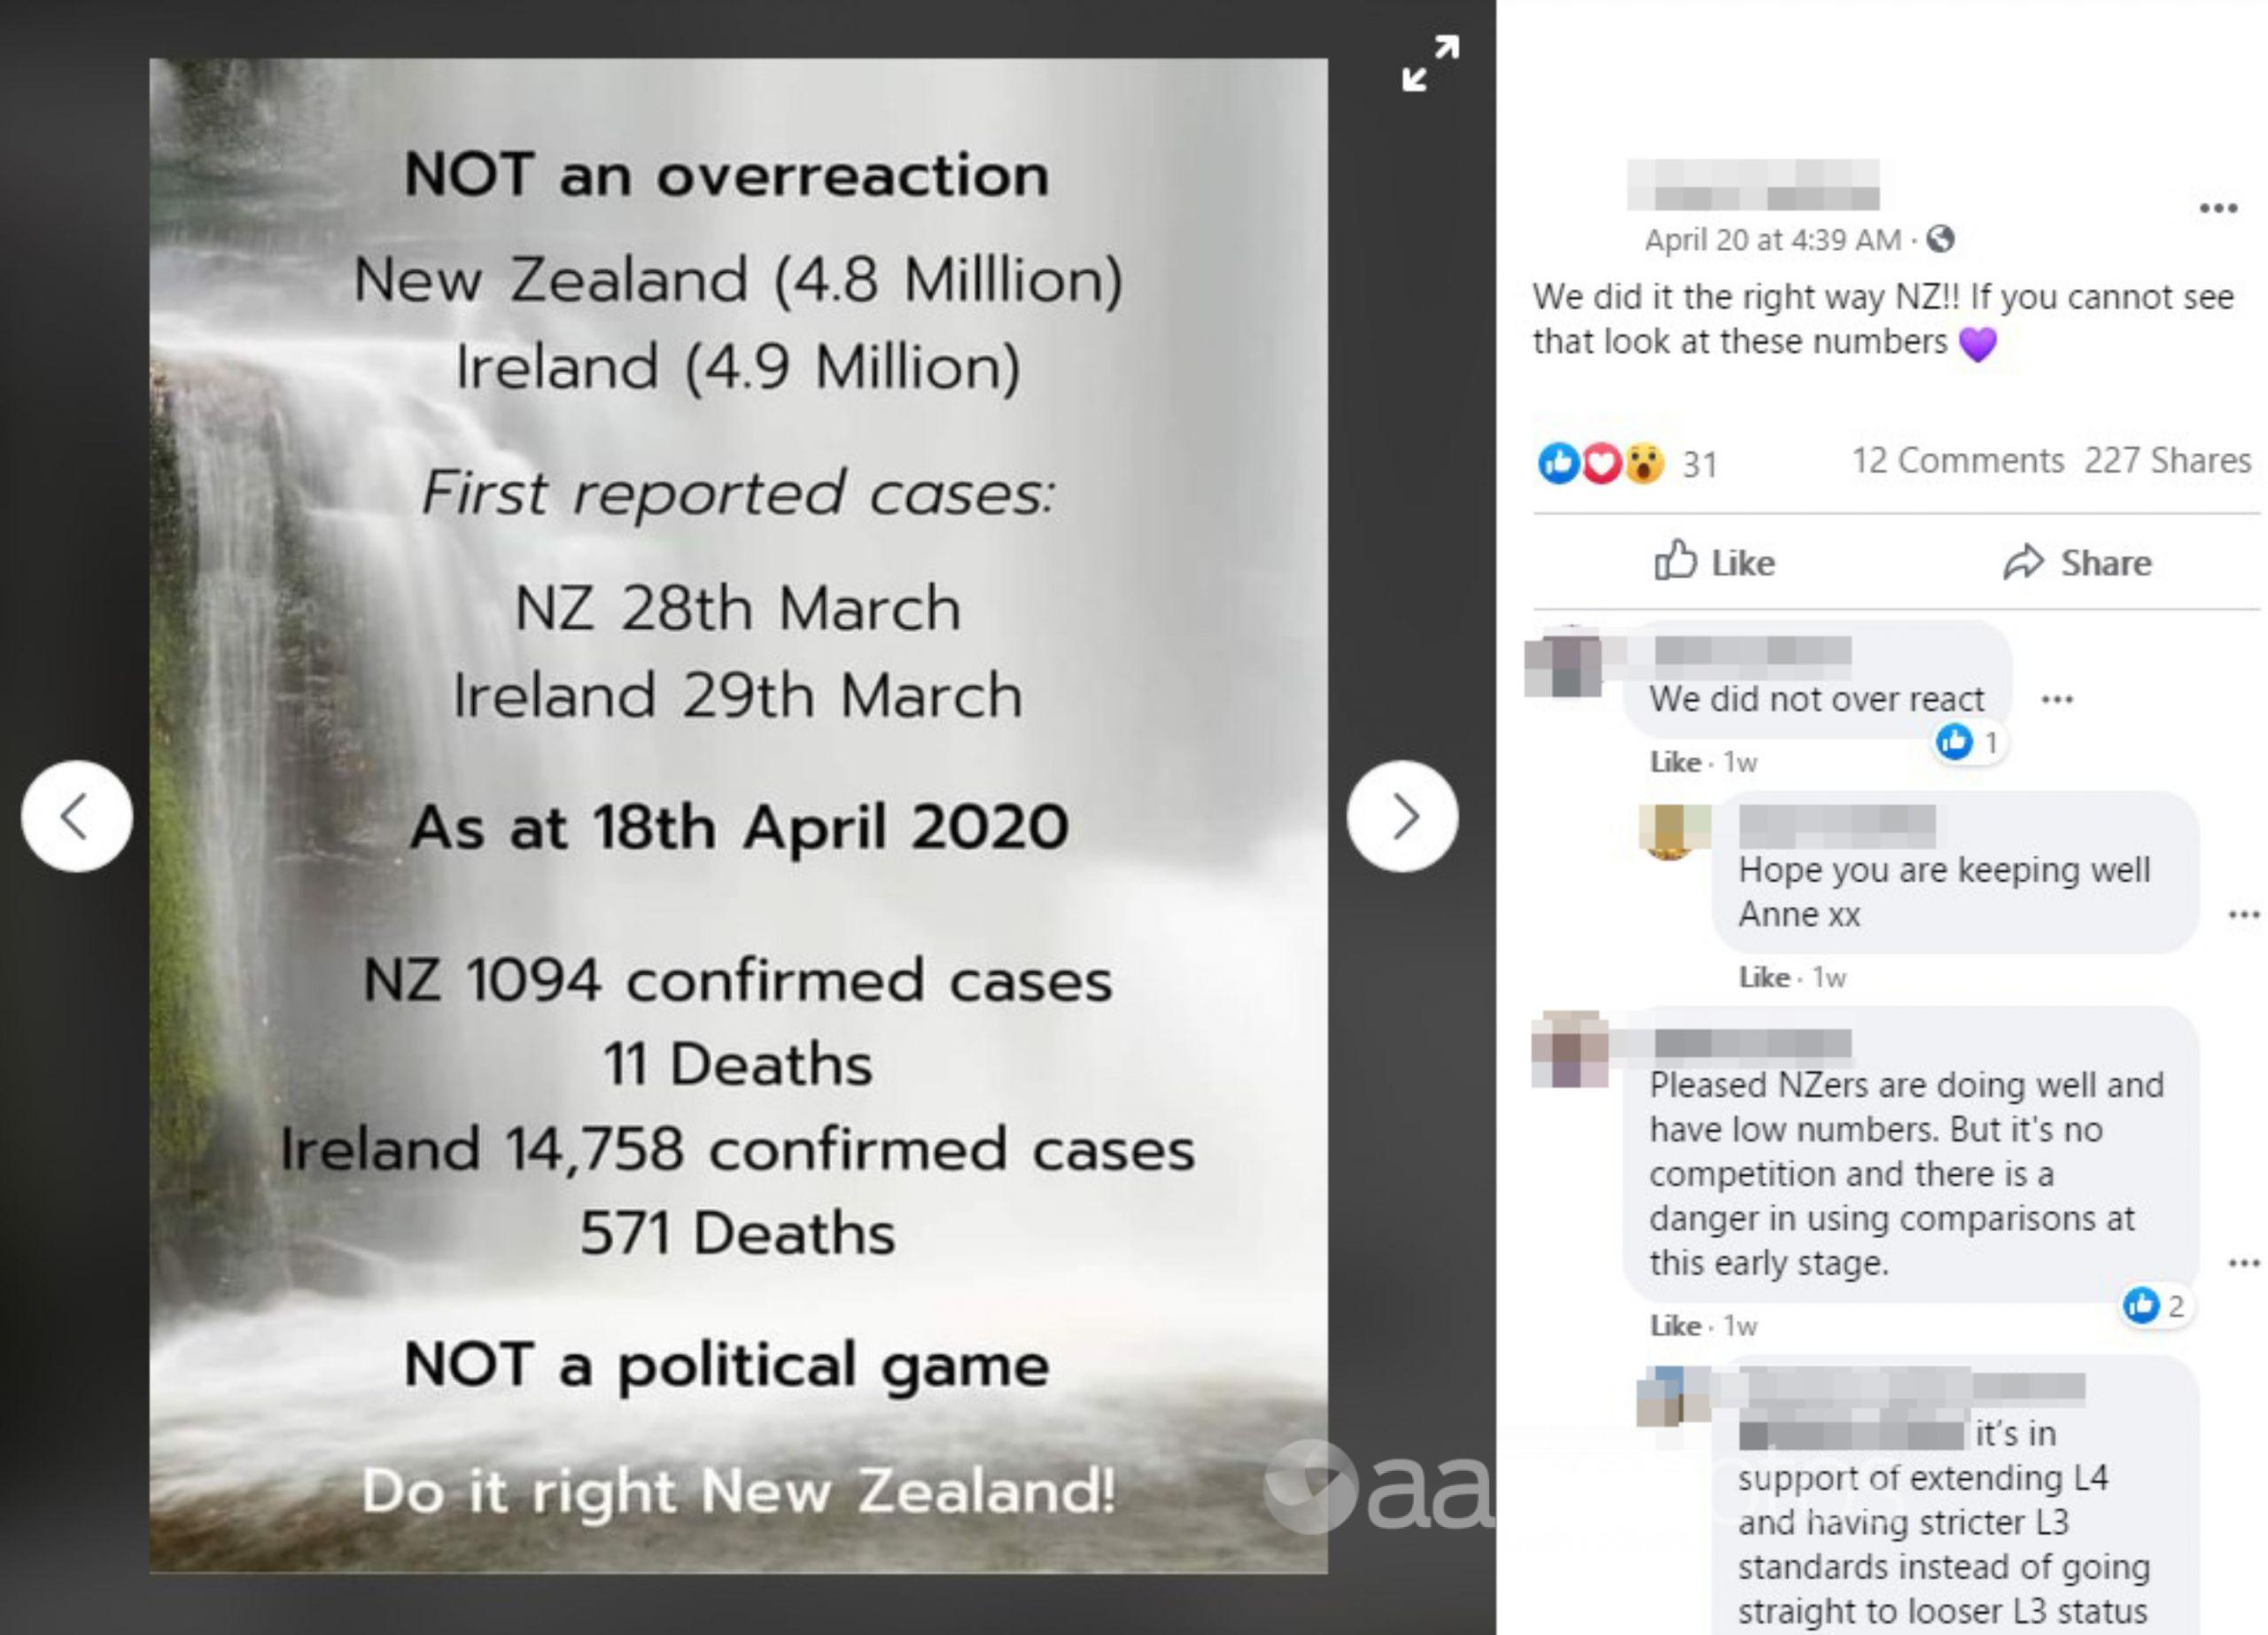 A Facebook post from April 20